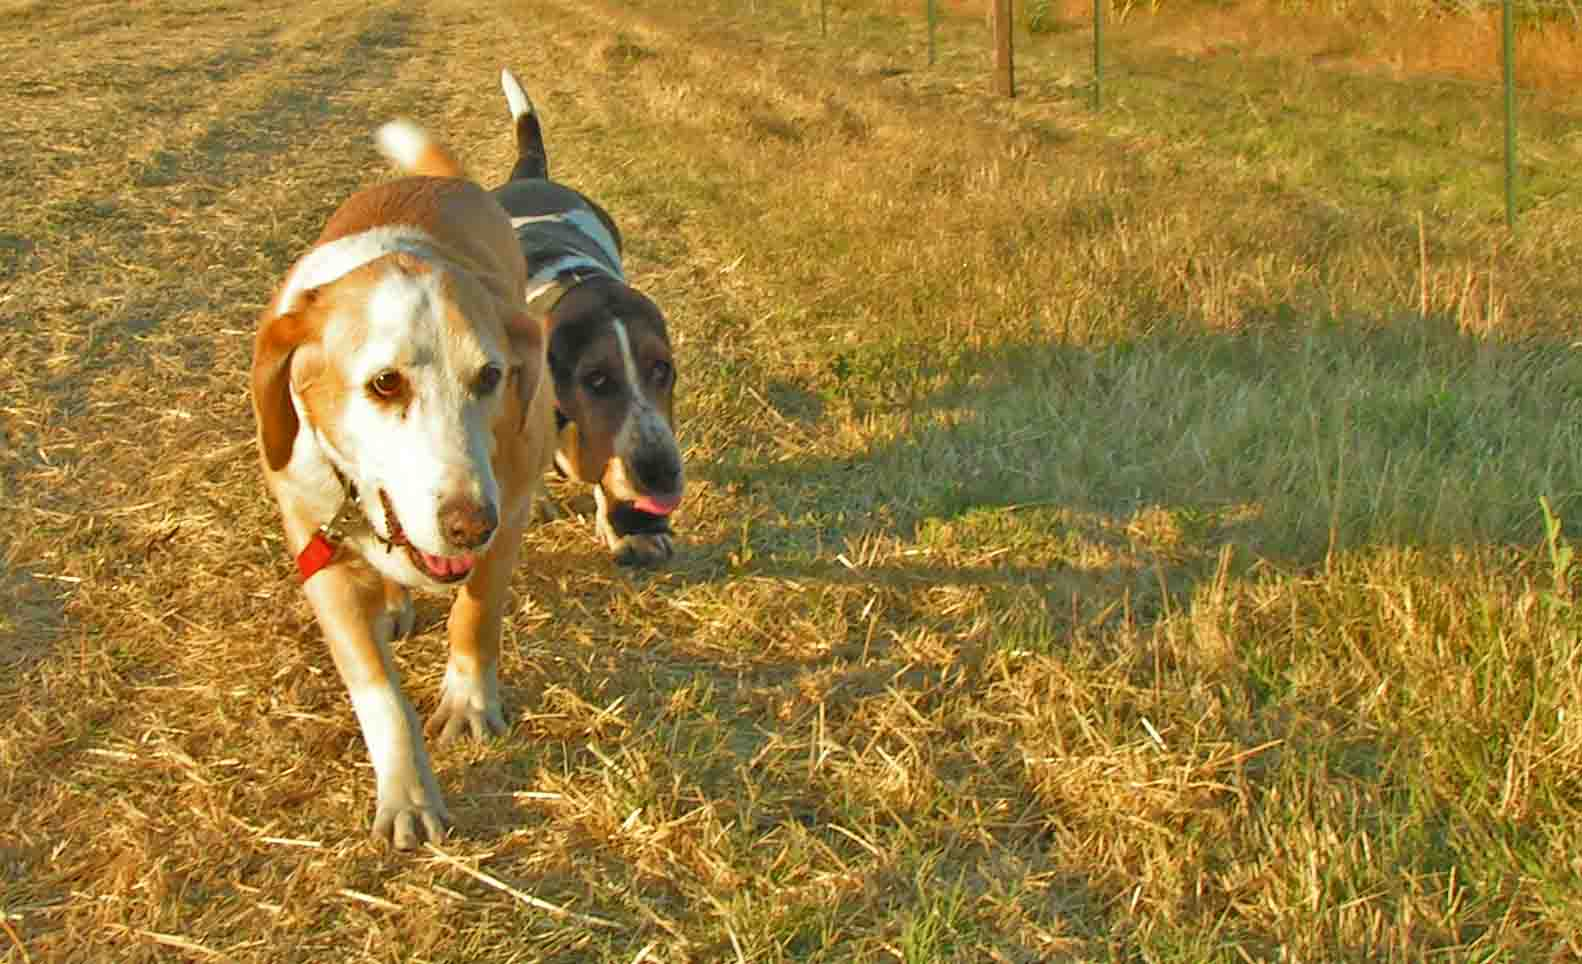 Elvis always walked in Howdy's shadow.  Photo: (c) Barb Ayers, DogDiary.org